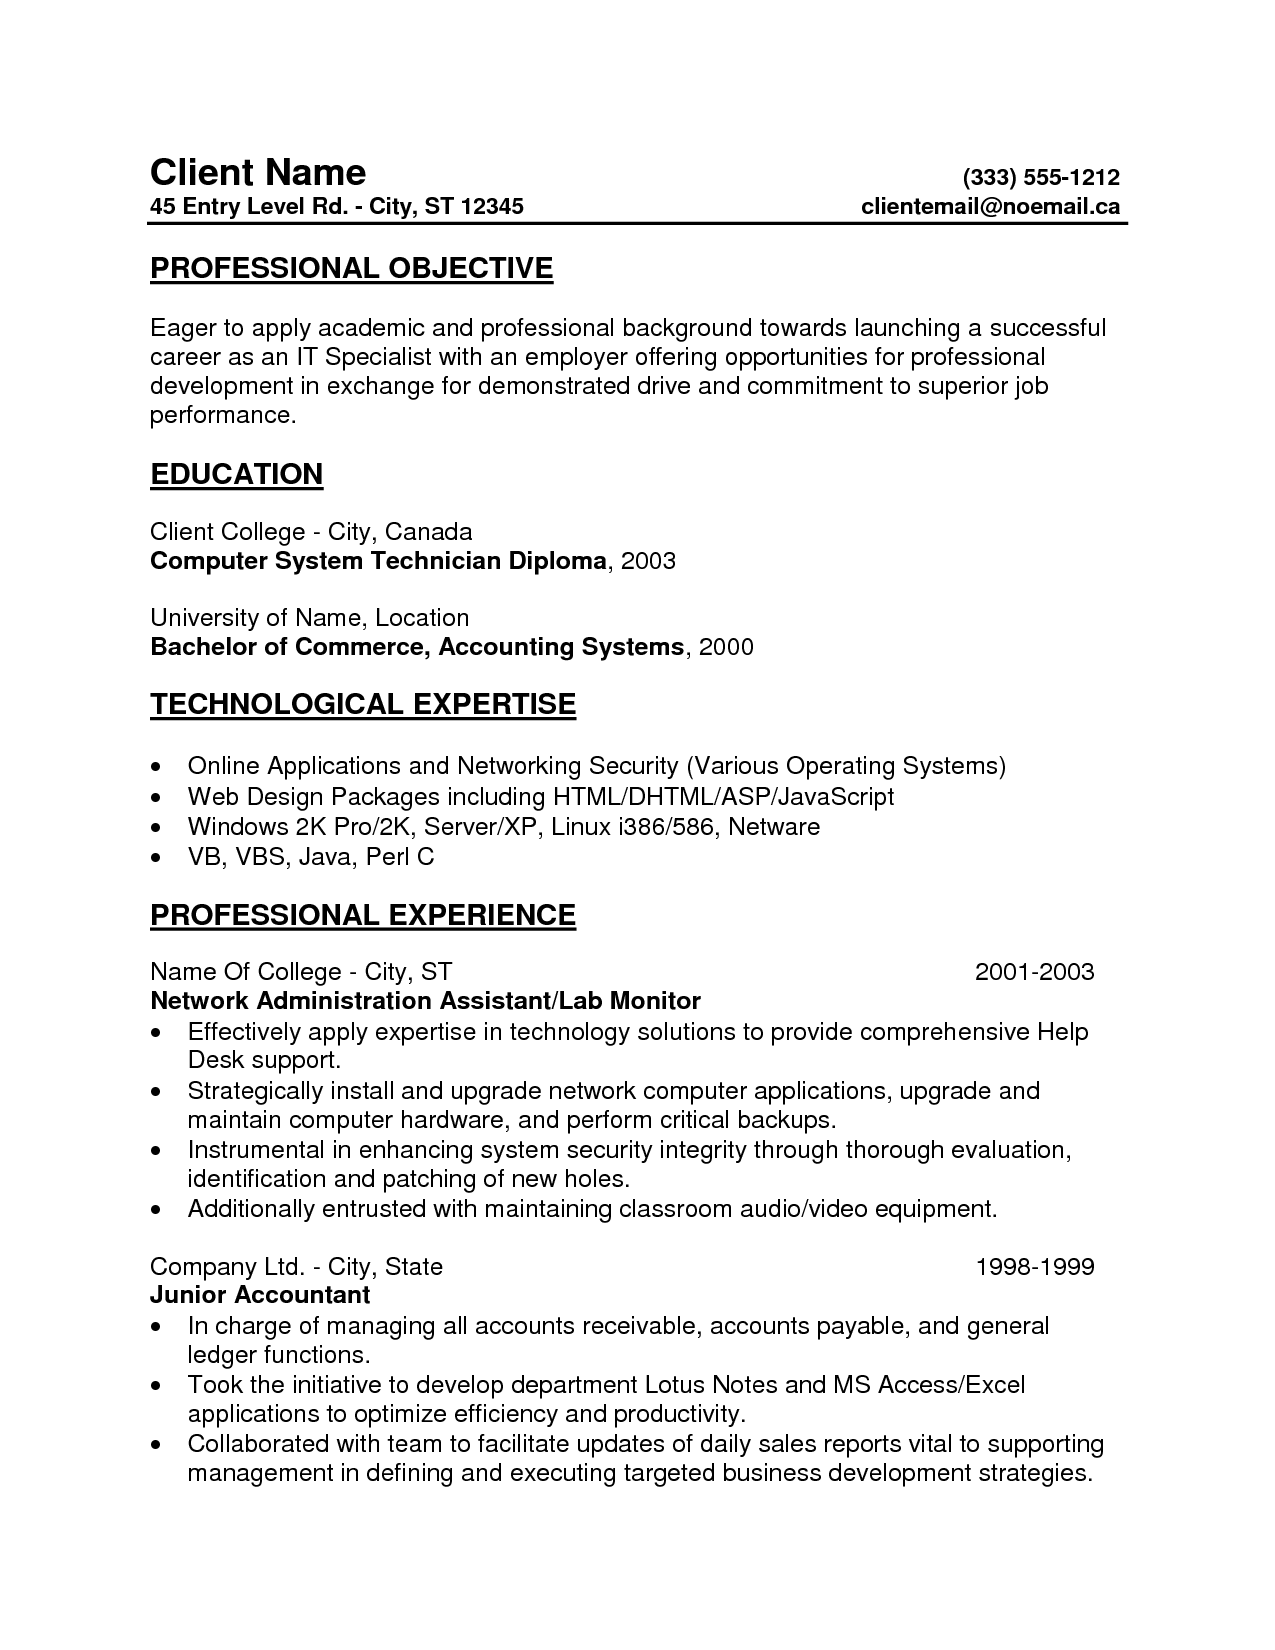 Career Objective For Biotechnology Resume Entry Level Resume Professional Objective And Professional